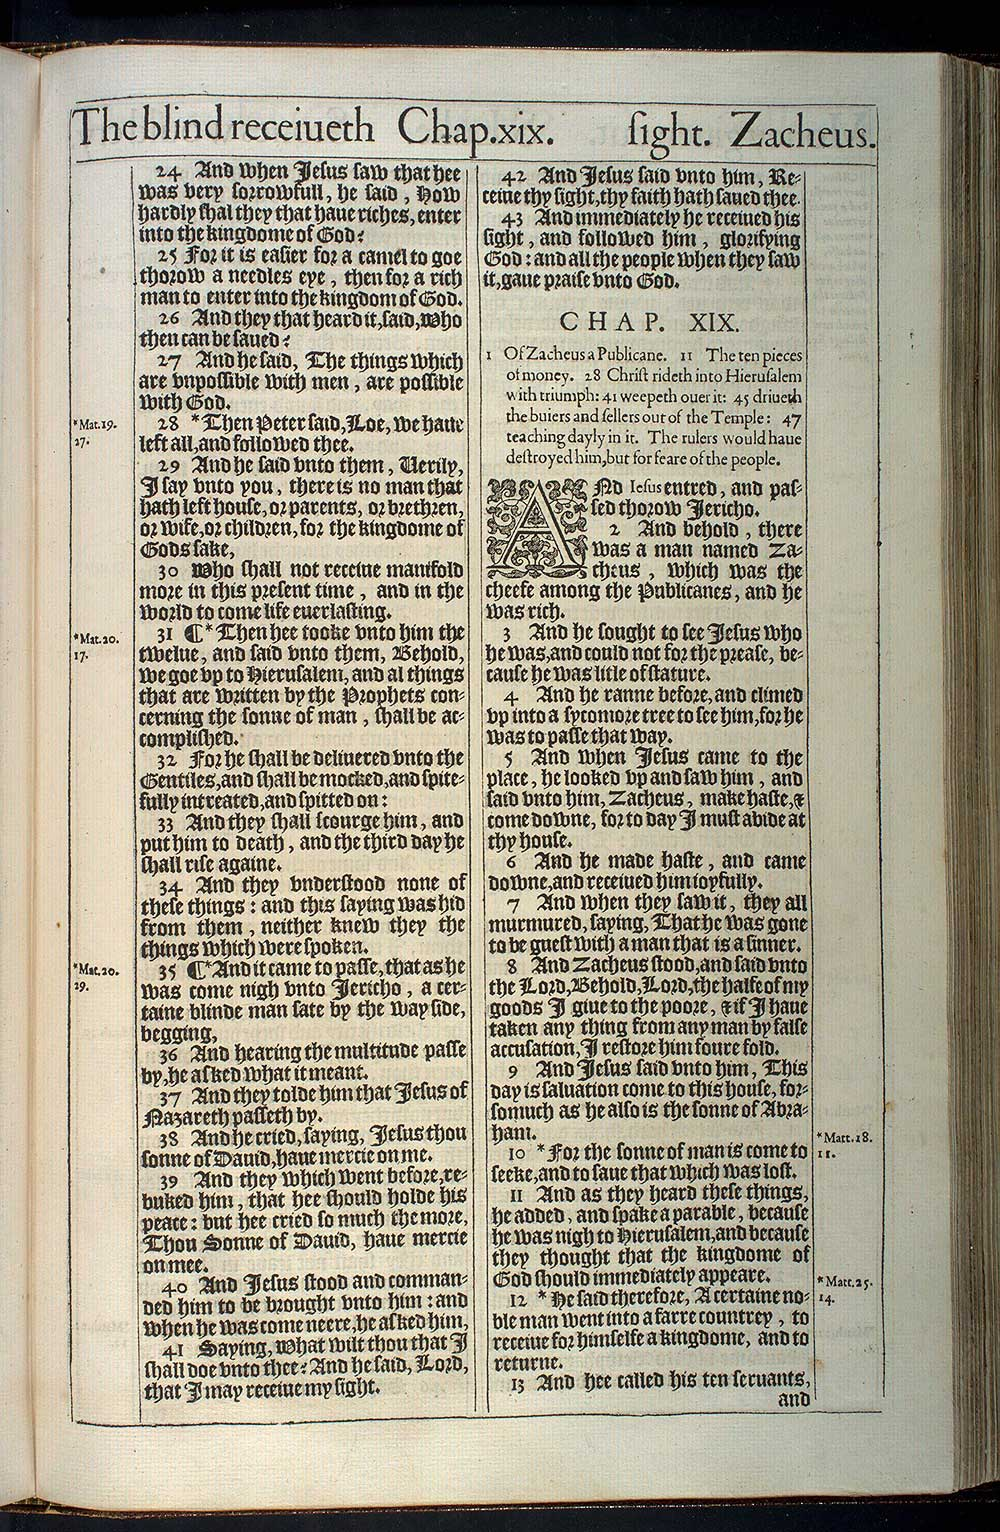 Luke Chapter 18 Original 1611 Bible Scan